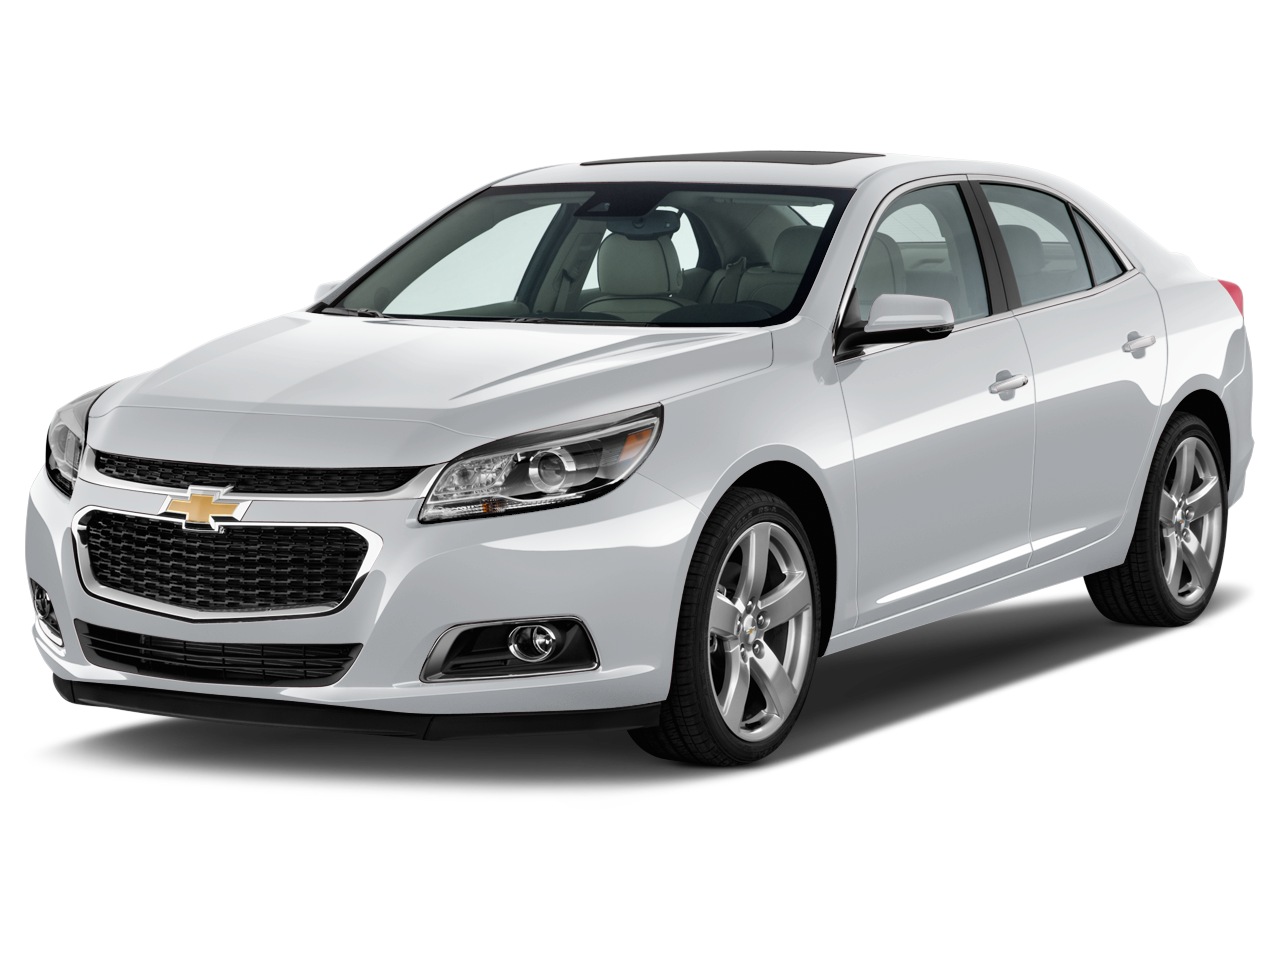 Used 2010, 2011, 2012, 2013 or 2014 Chevrolet Malibu for Sale